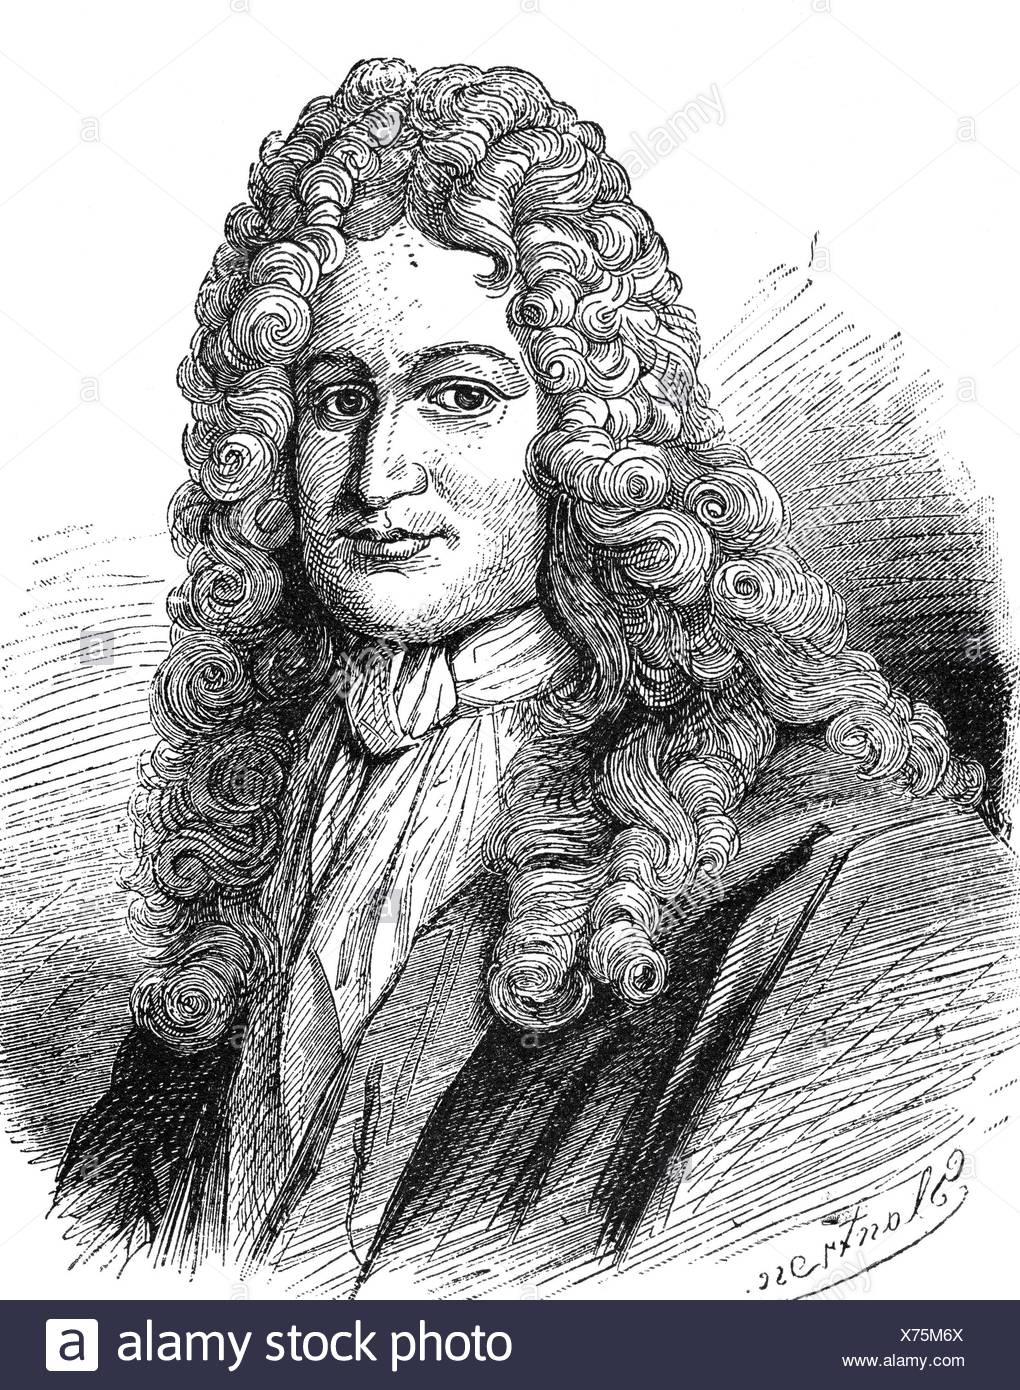 an analysis of gottfried wilhelm von leibniz who invented a computer that was built in 1694 Gottfried wilhelm von leibniz was a german polymath and philosopher he occupies a prominent place in the history of mathematics and the history of philosophy most scholars believe leibniz developed calculus independently of isaac newton, and leibniz's notation has been widely used ever.